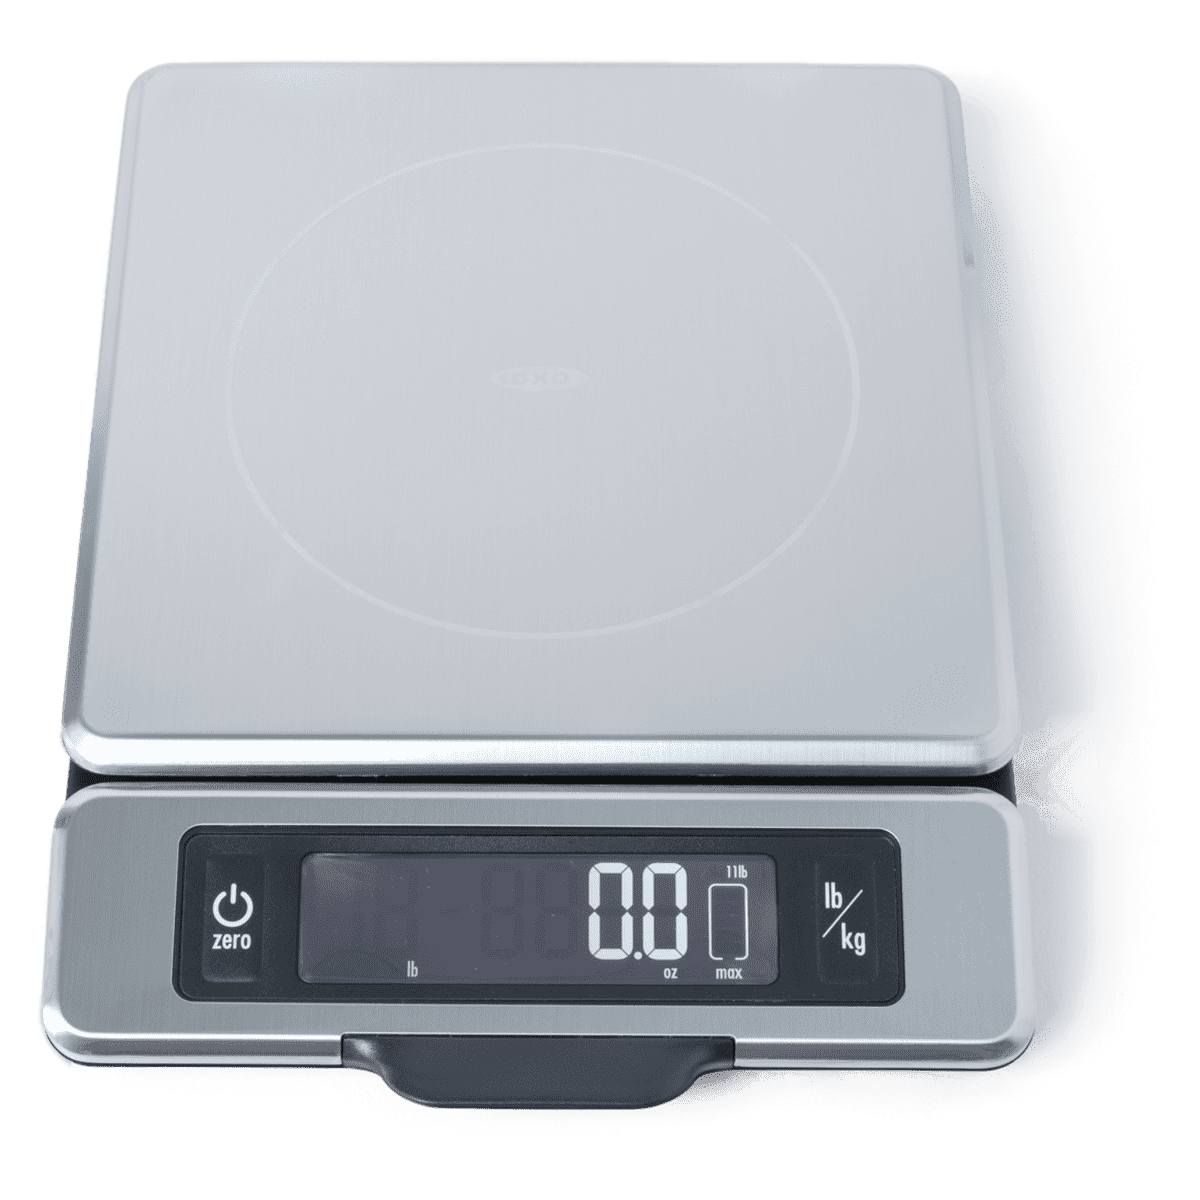 The Best Digital Kitchen Scales | Cook's Illustrated